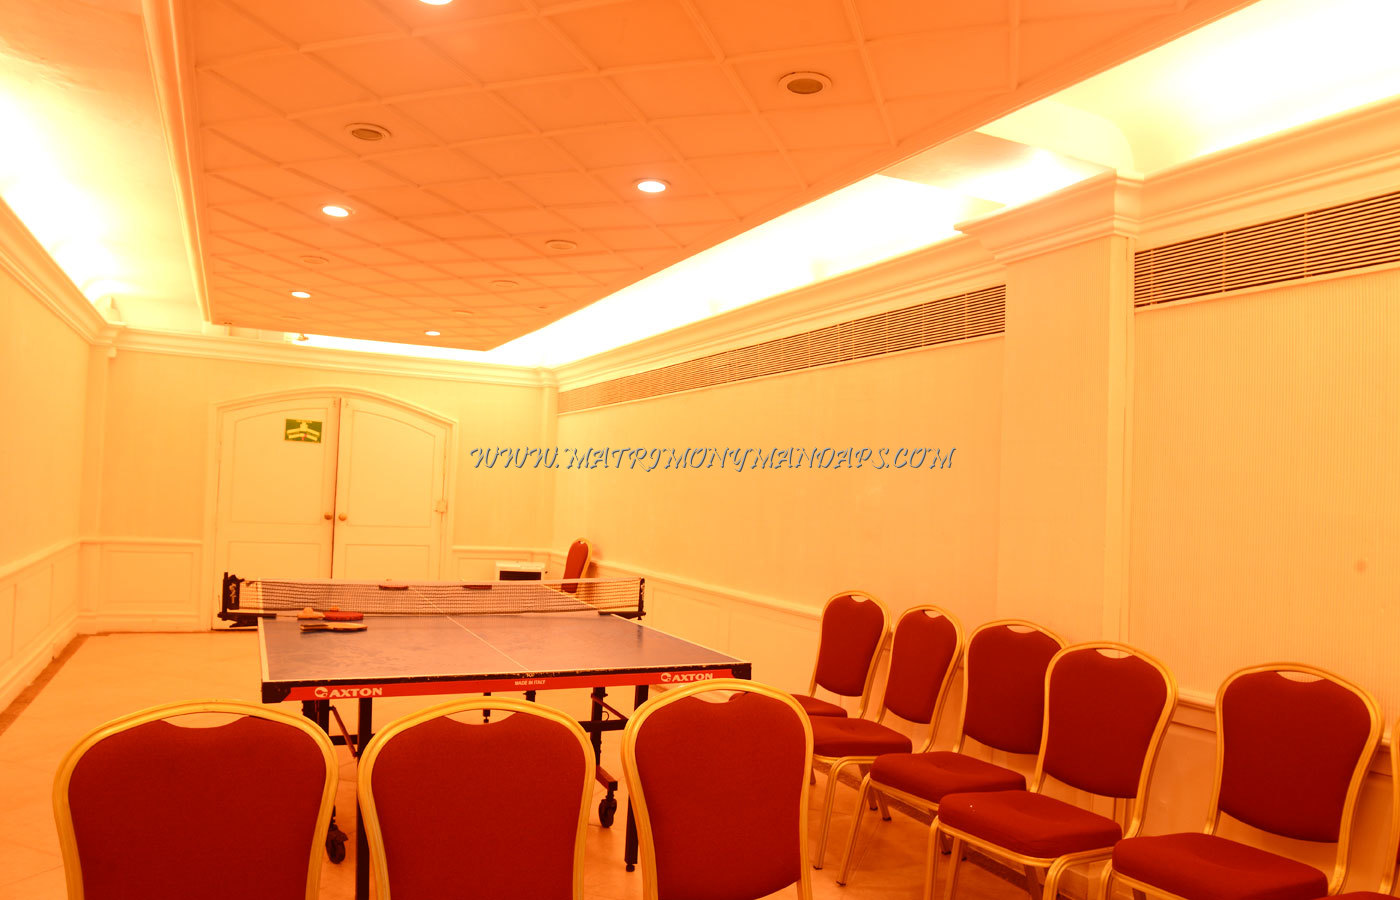 Find the availability of the The Gateway Hotel Banquet Hall (A/C) in Varkala, Trivandrum and avail special offers